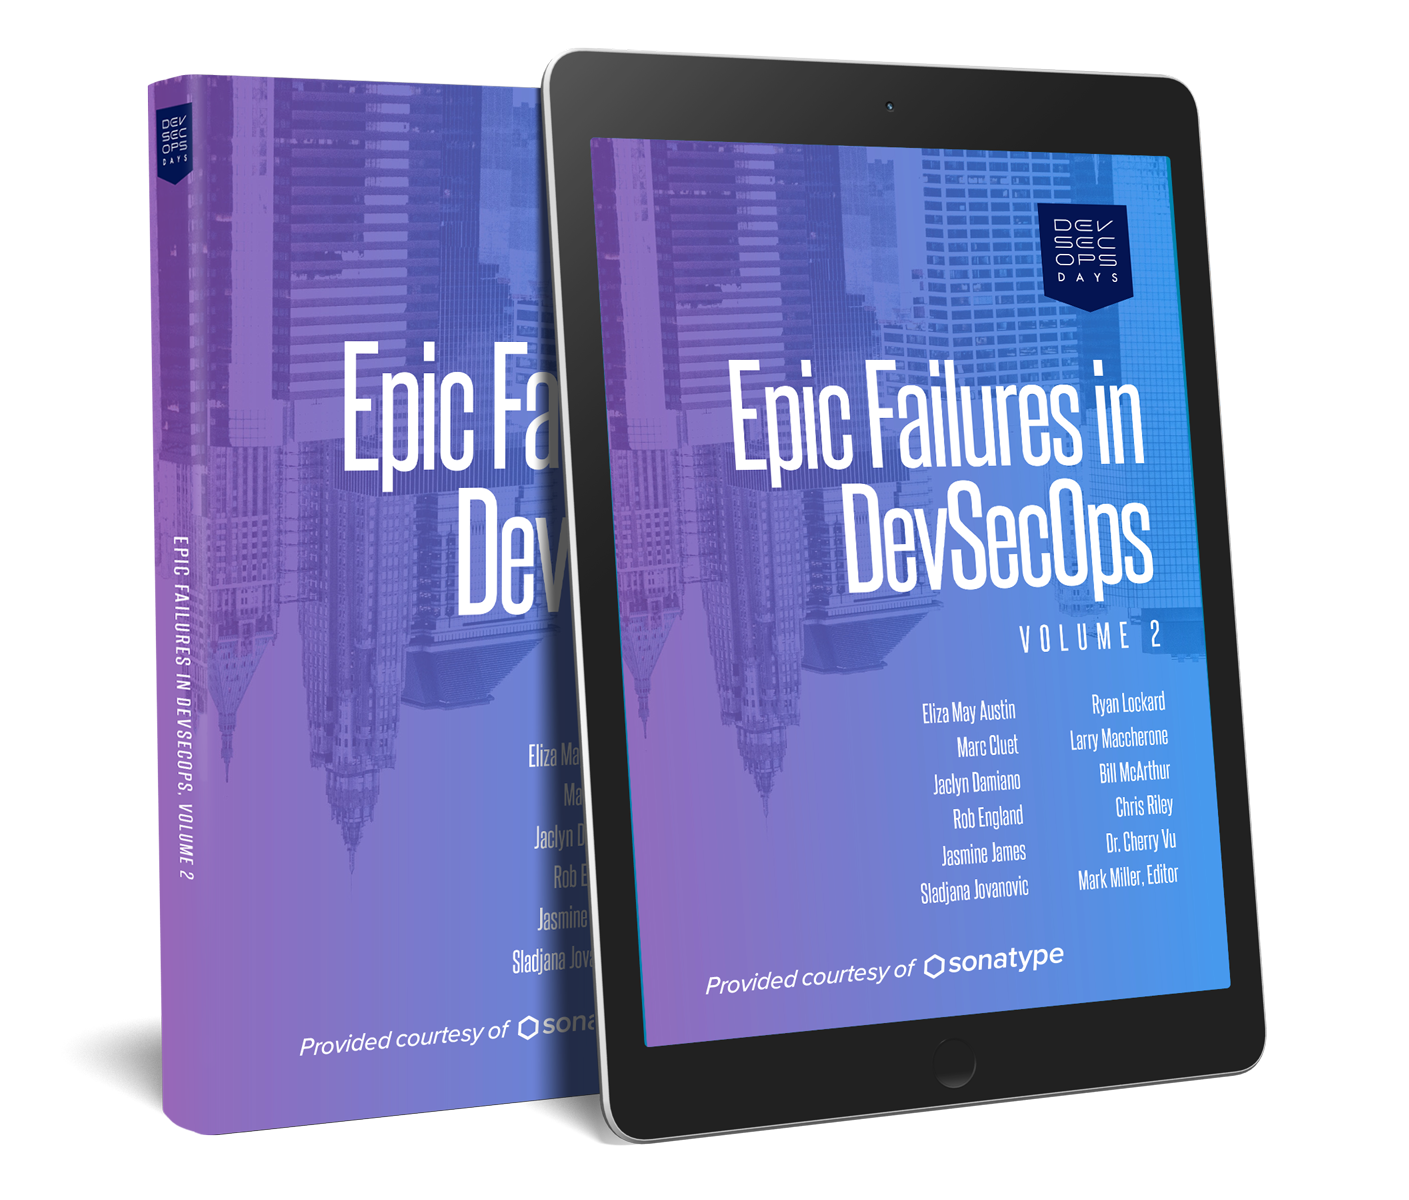 Epic Failures in DevSecOps, Volume 2